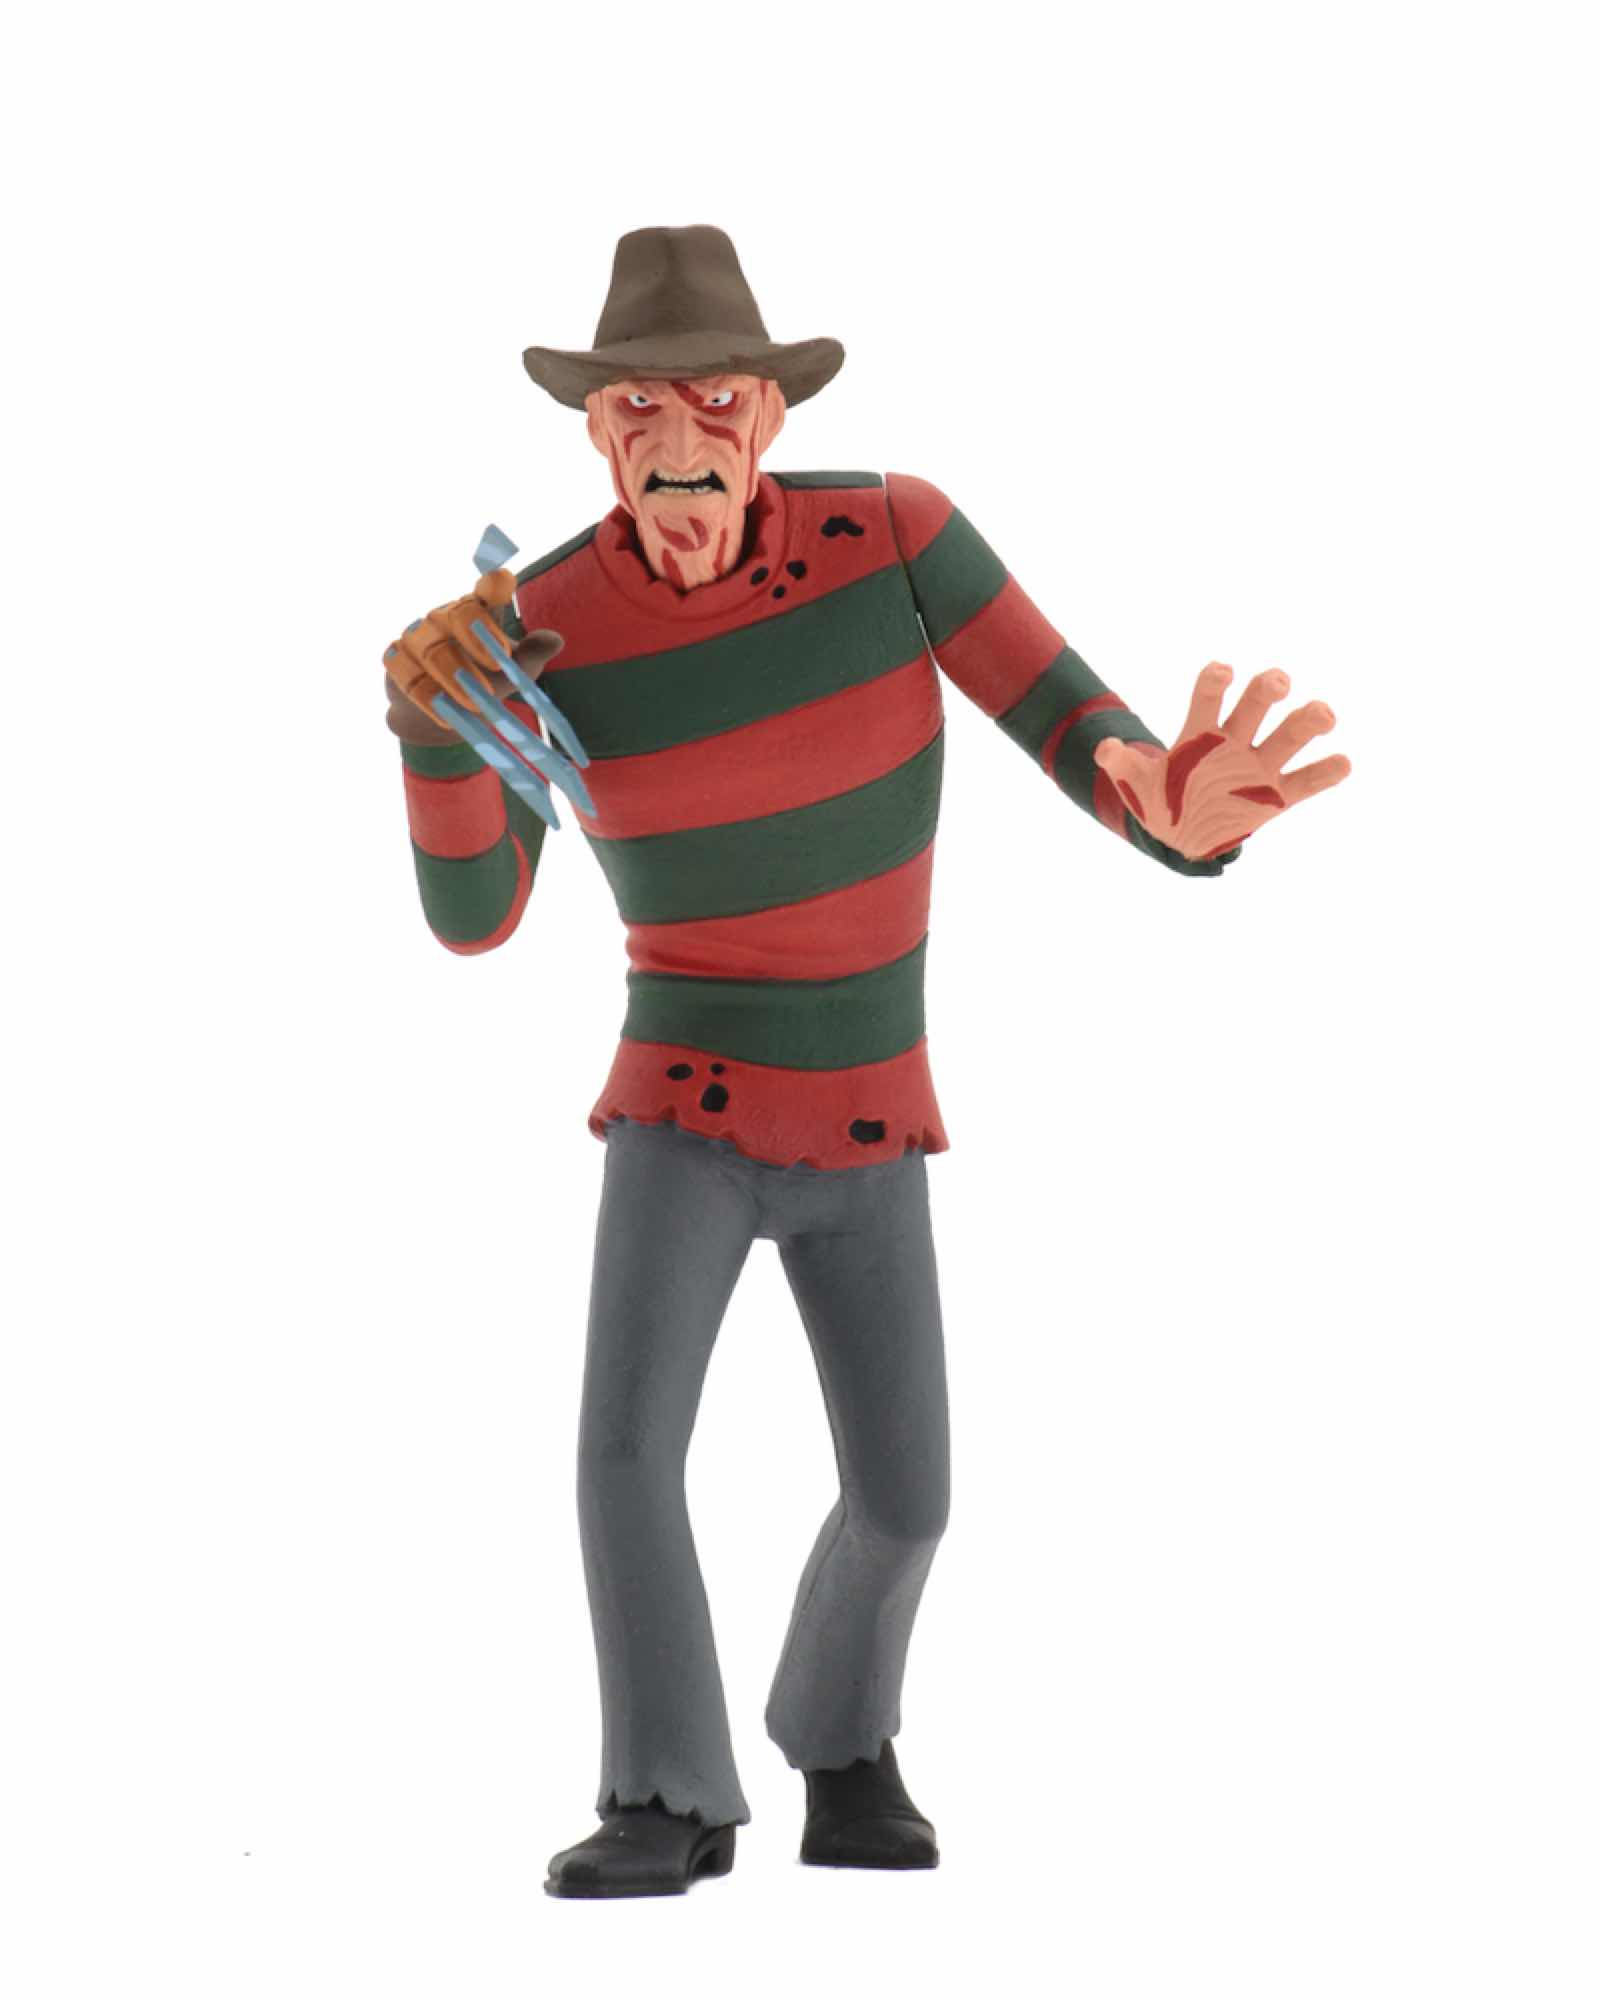 TOONY TERRORS FREDDY KREUGER FIGURA 15 CM SCALE ACTION FIGURE NIGHTMARE ON ELM STREET